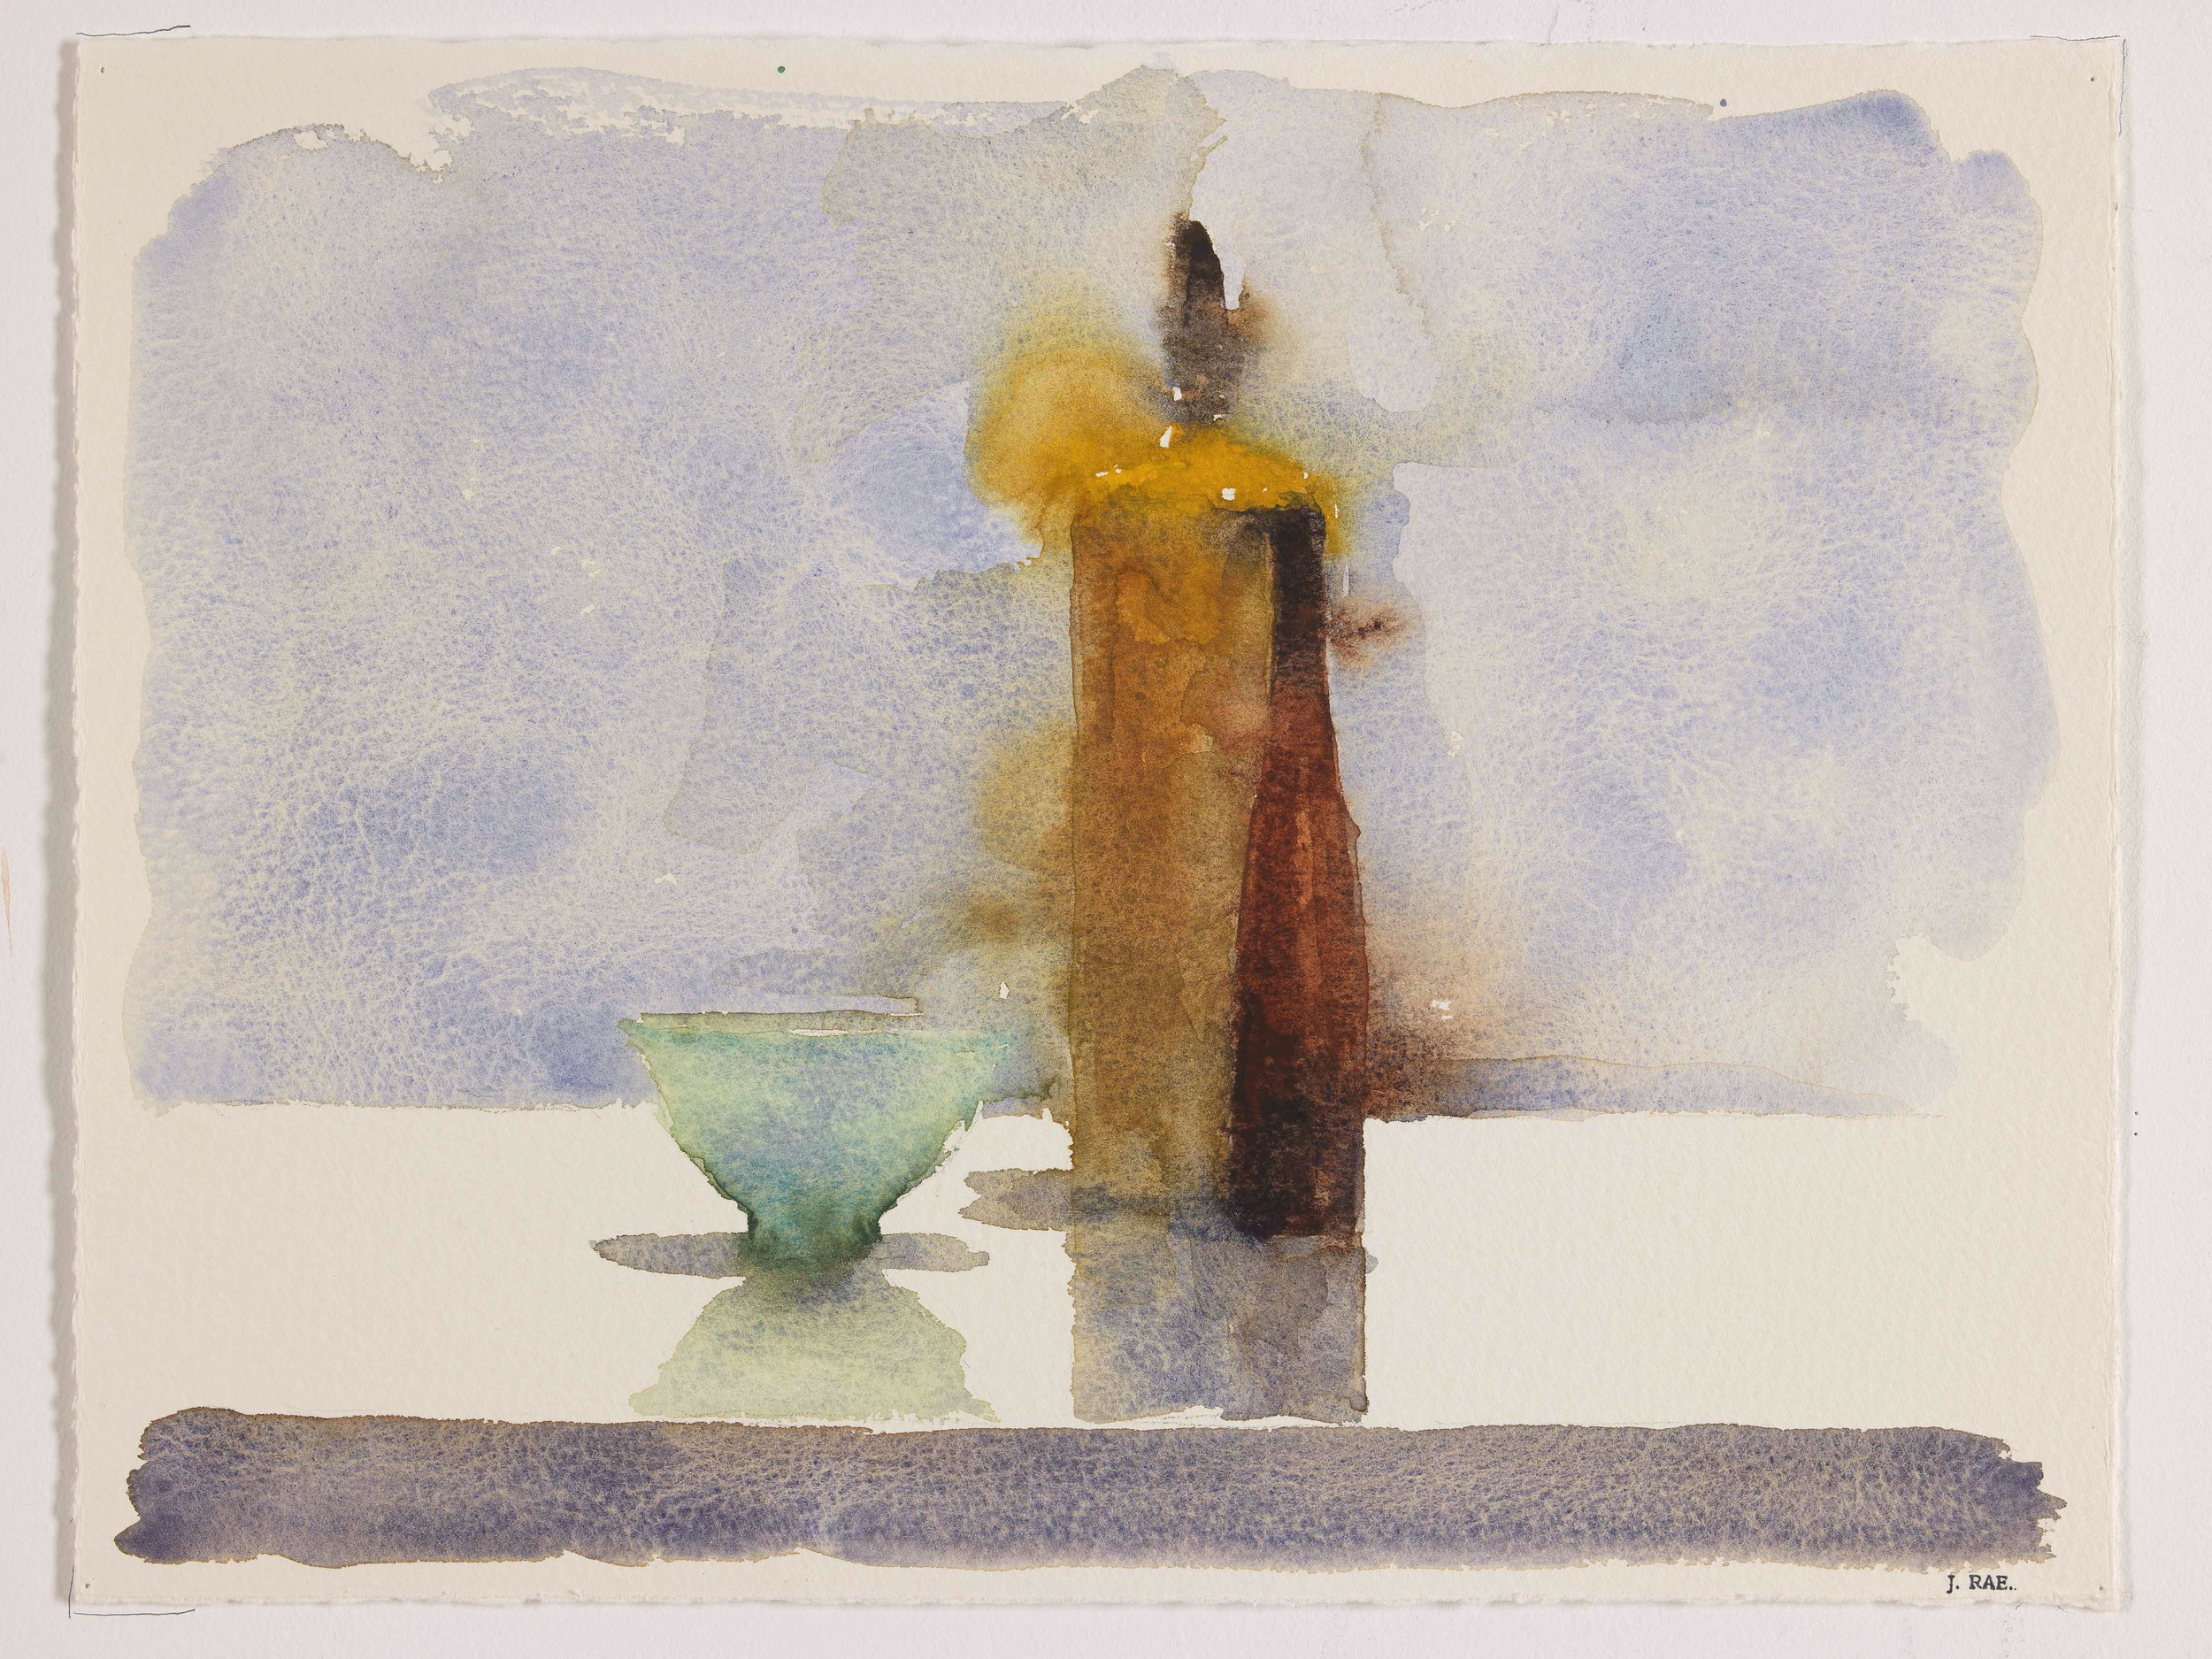 WCSL117, 2010, water colour on paper, 38 x 29cm.